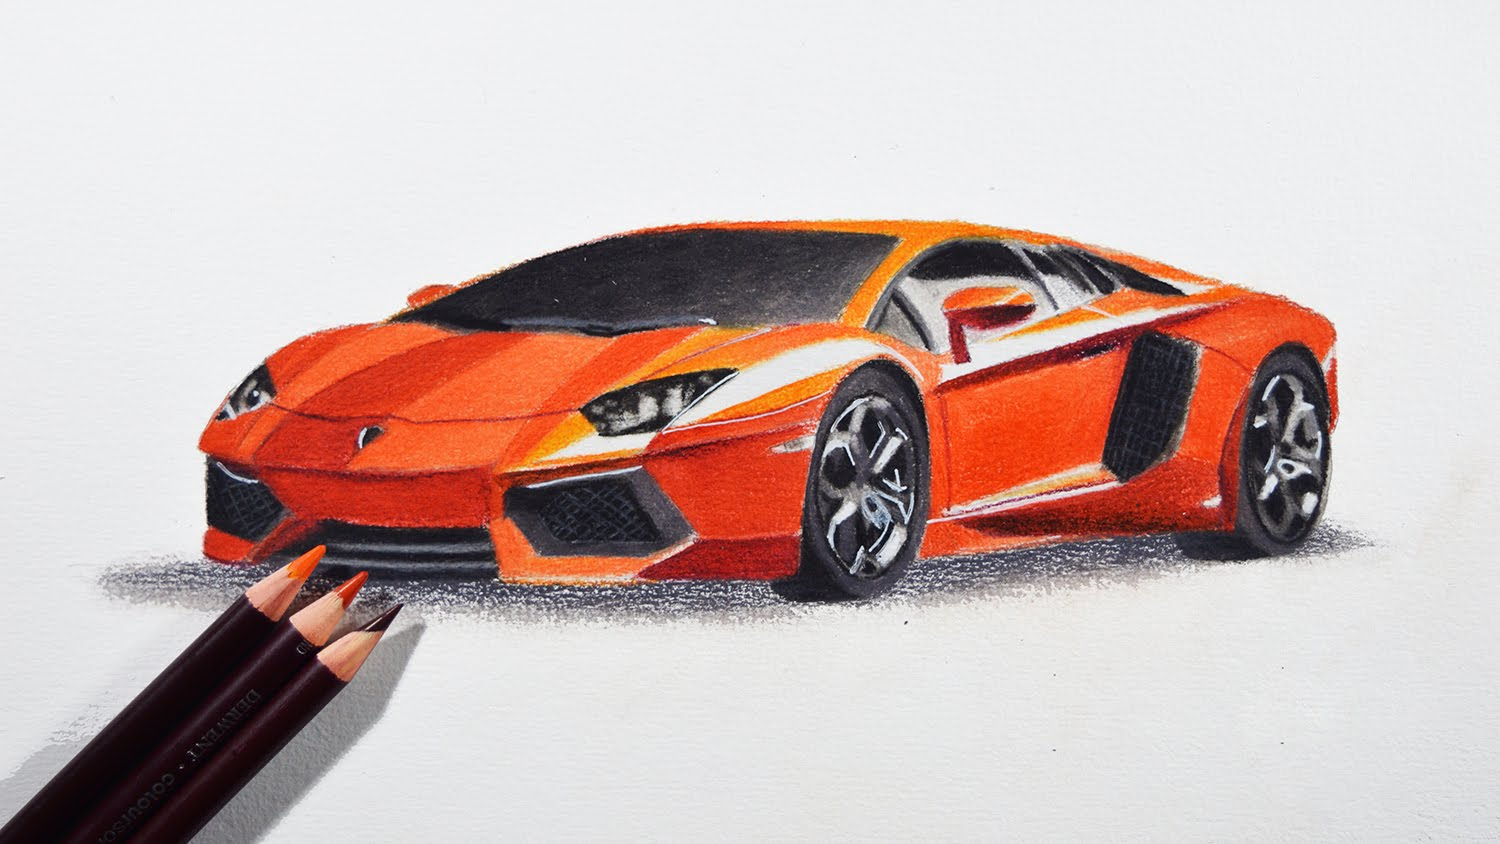 Drawn vehicle pencil for kid Colored Car to tutorial Car